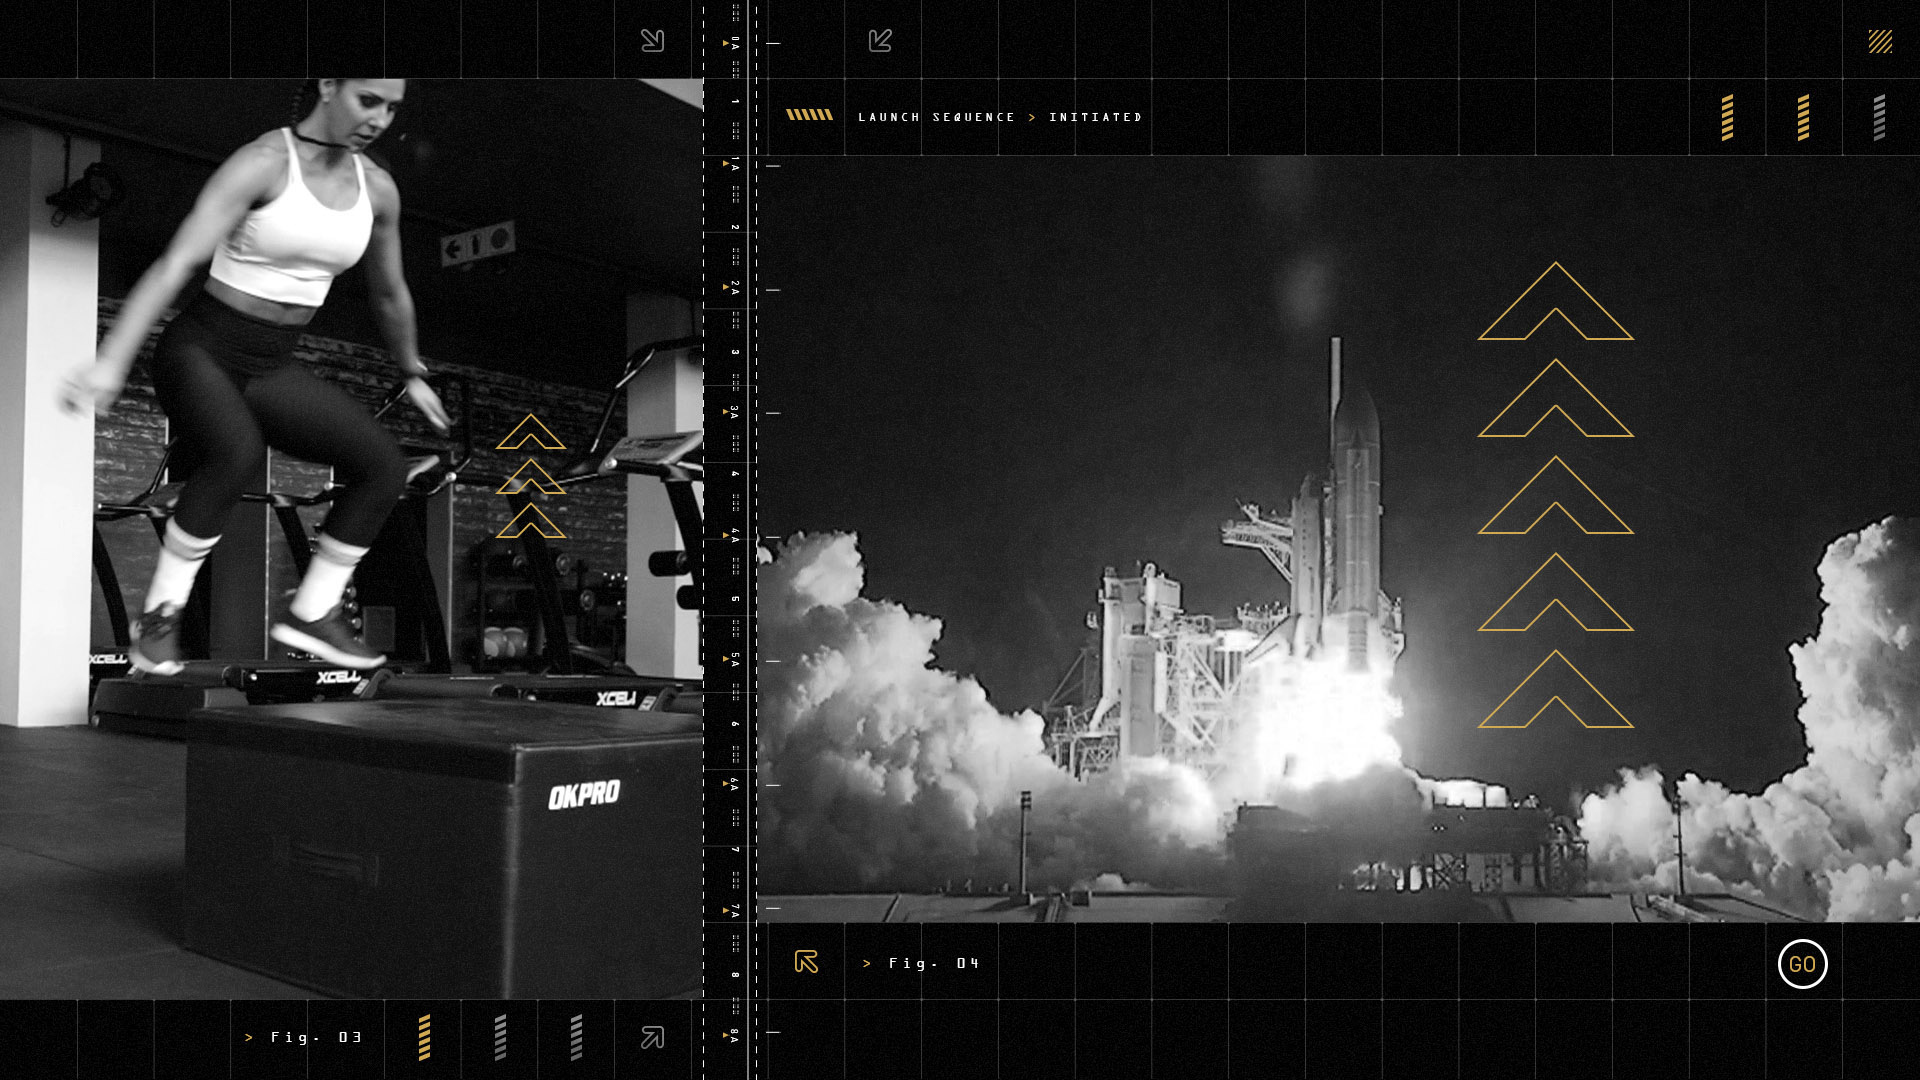 Split screen of a female fitness athlete jumping and a rocket launching next to her.